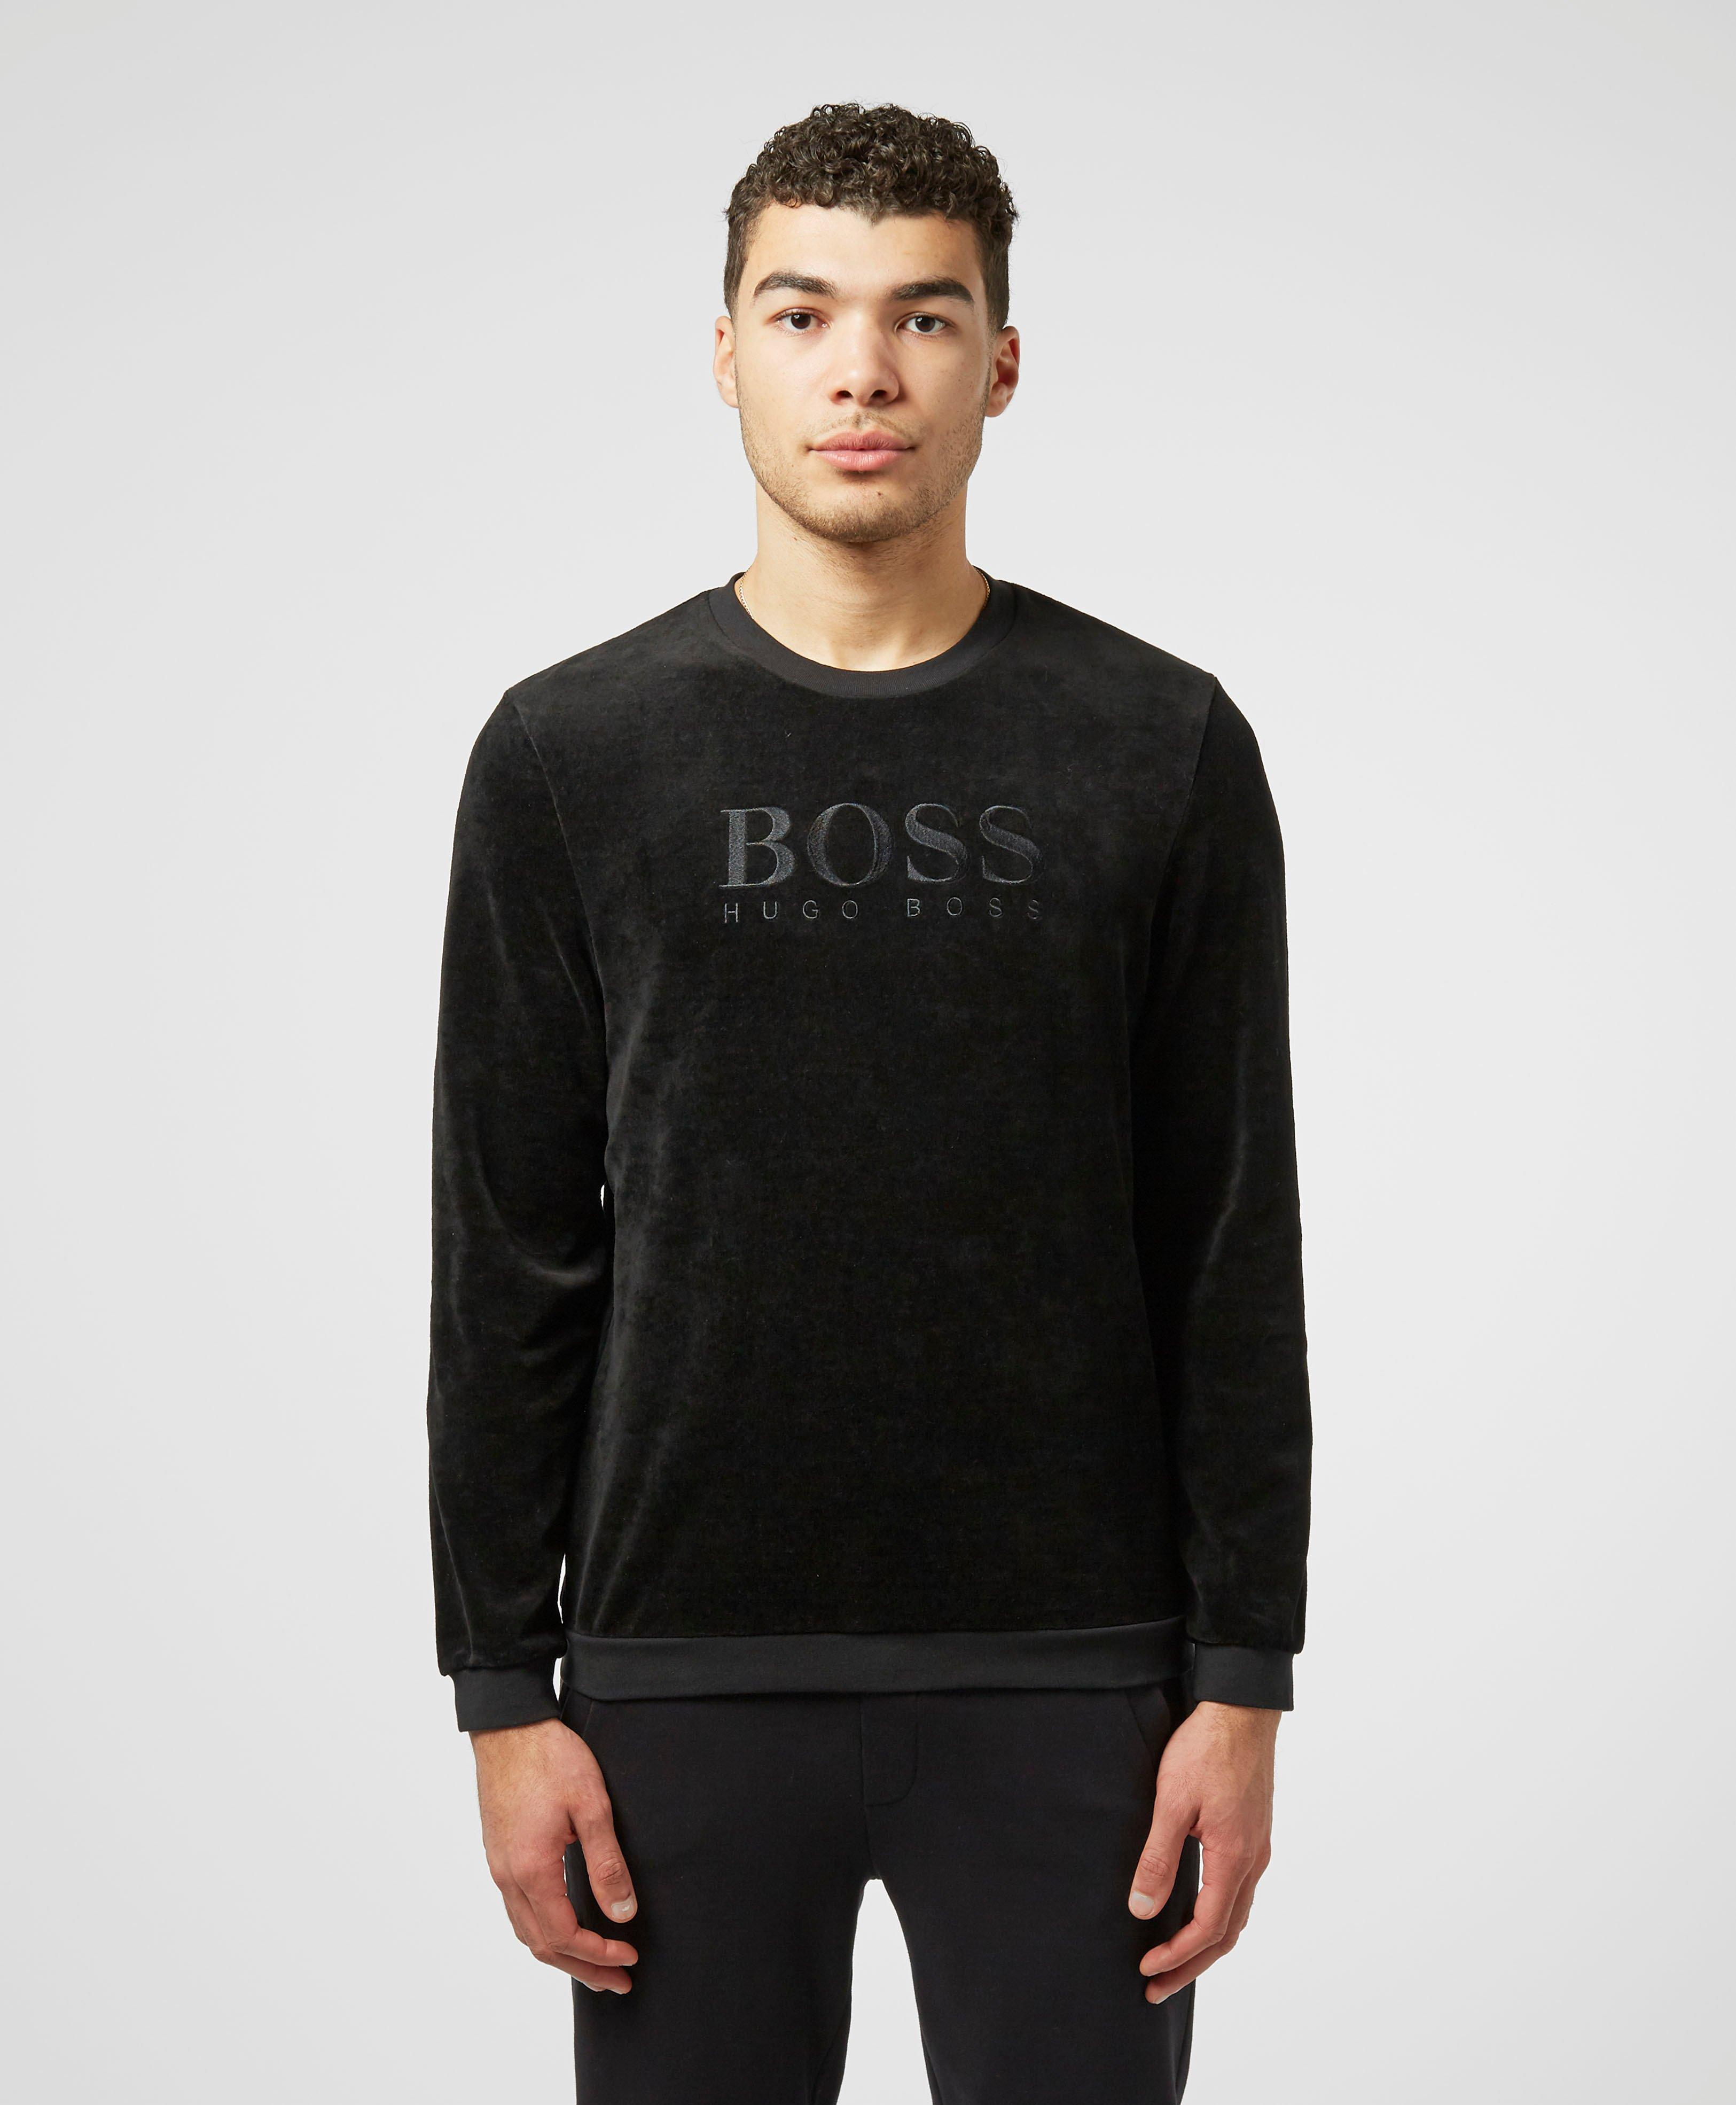 scotts hugo boss